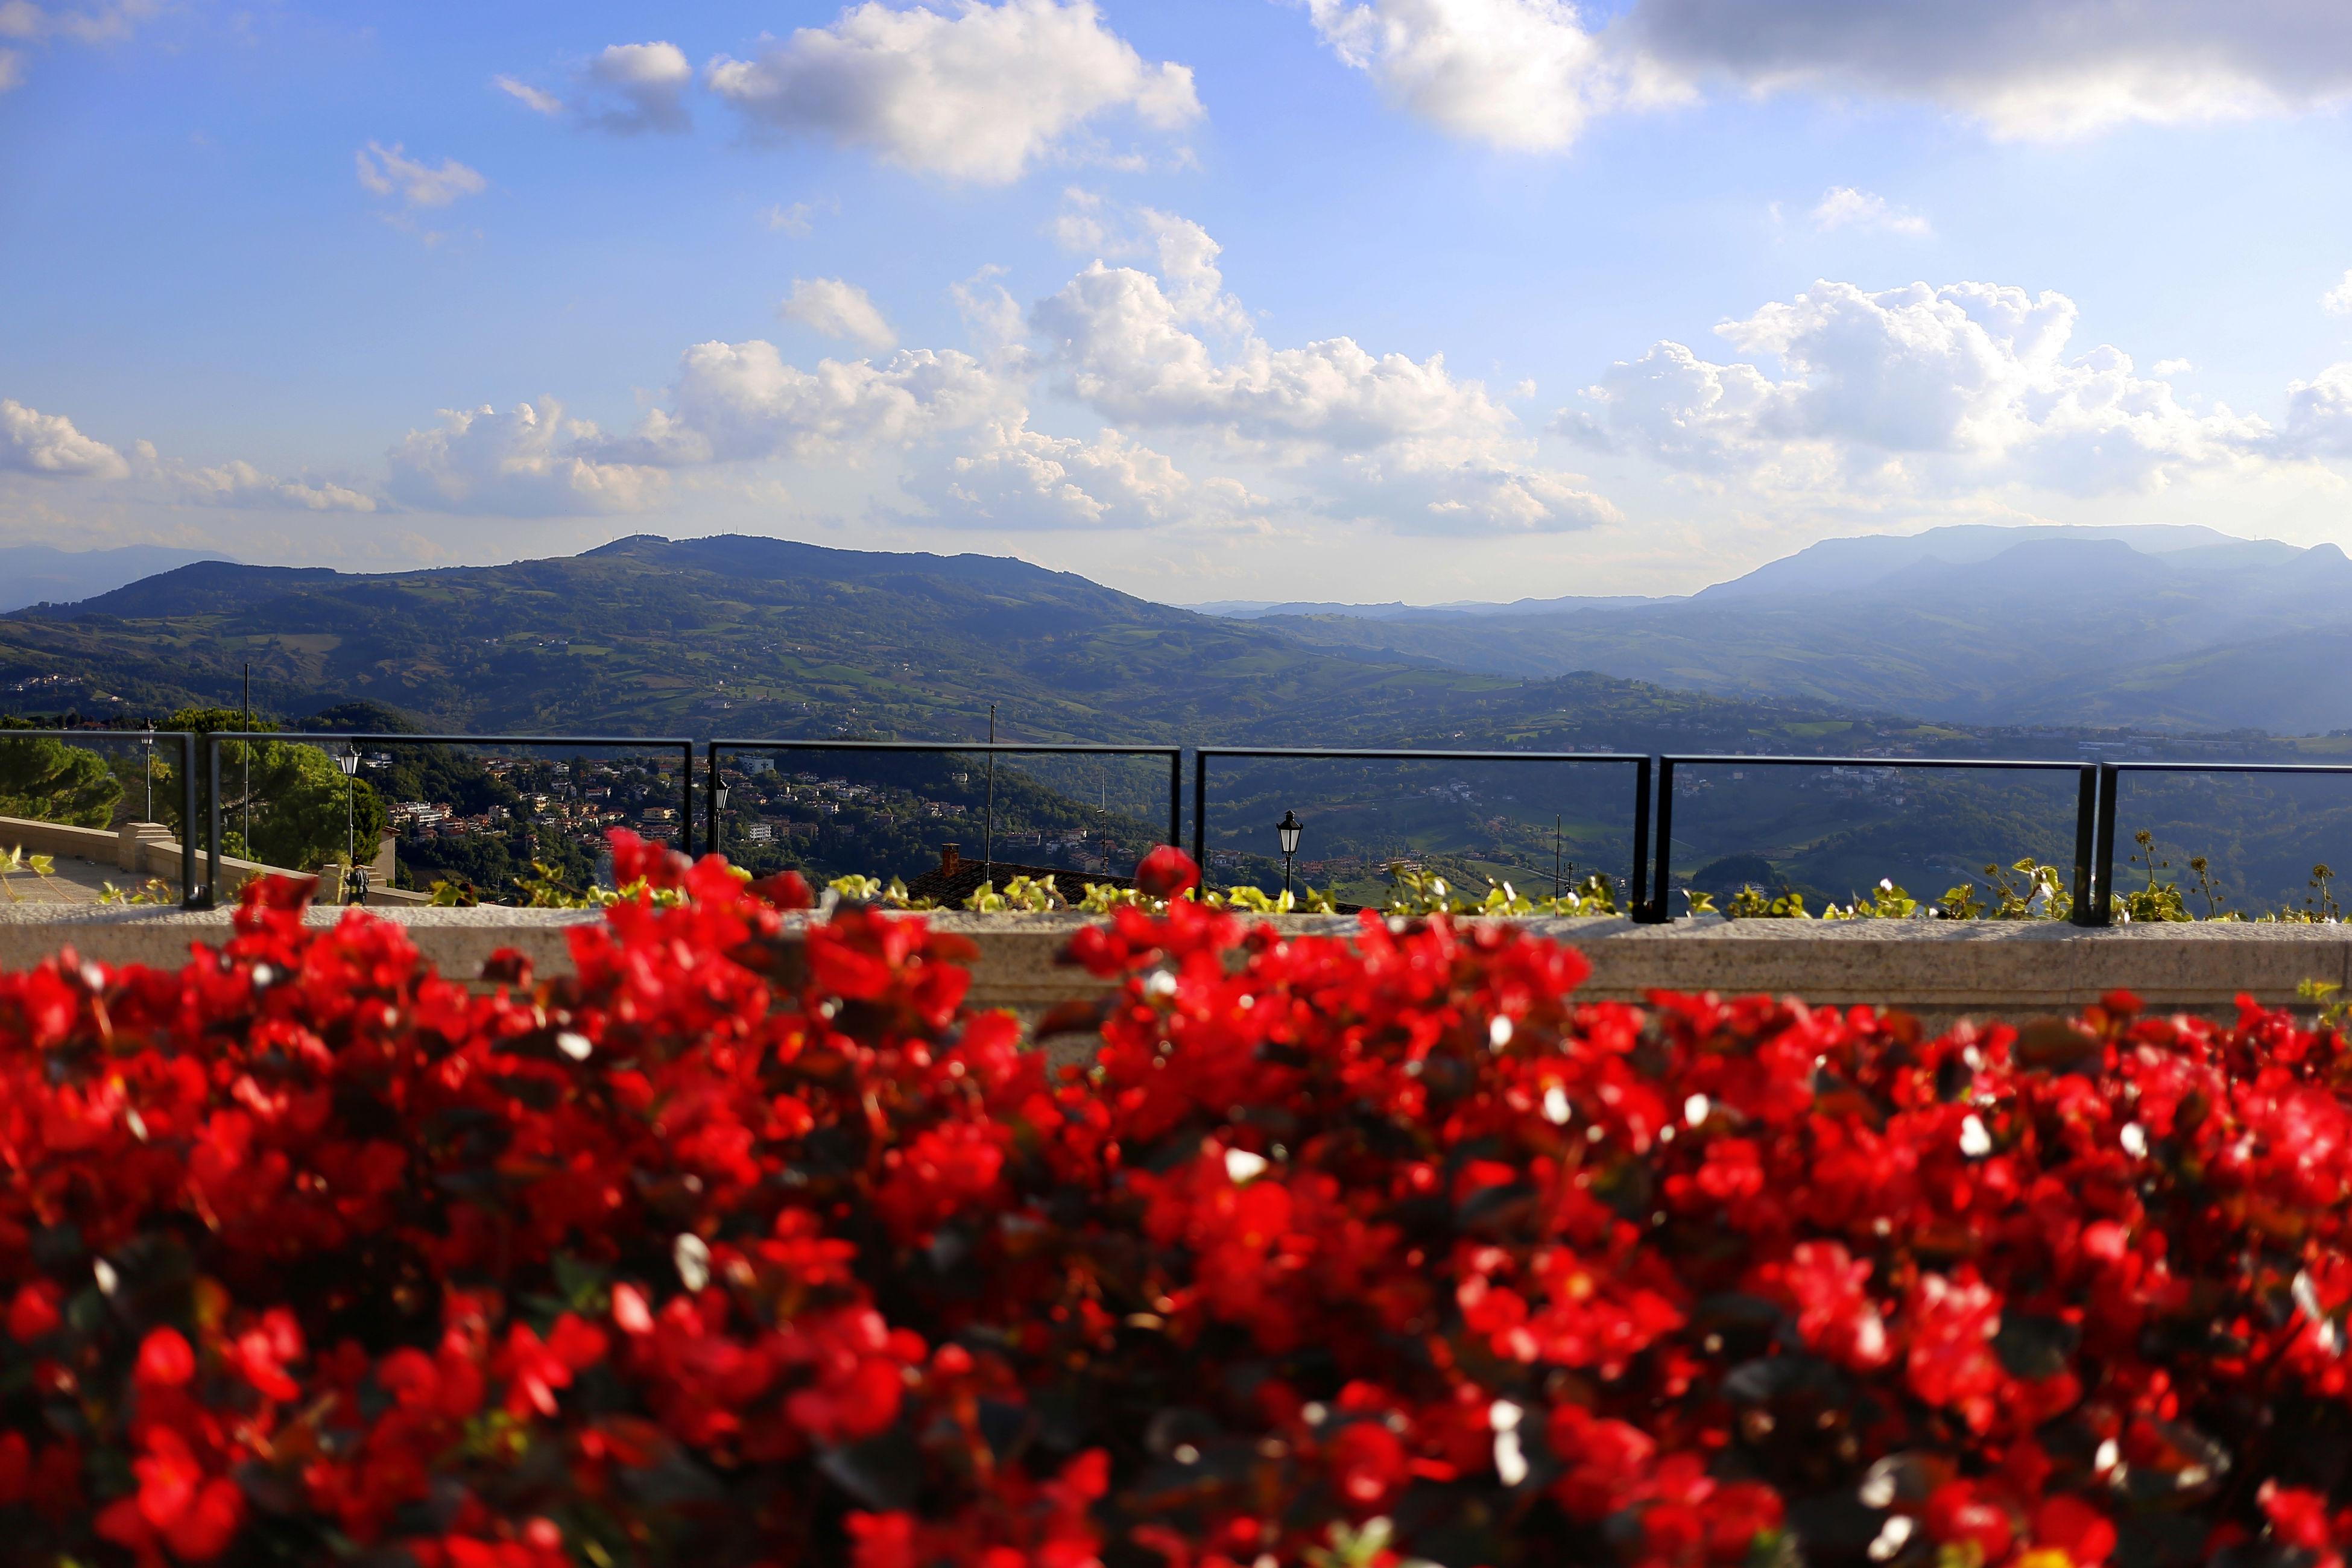 flower, sky, nature, red, beauty in nature, outdoors, no people, cloud - sky, growth, plant, mountain, day, bridge - man made structure, freshness, fragility, close-up, architecture, water